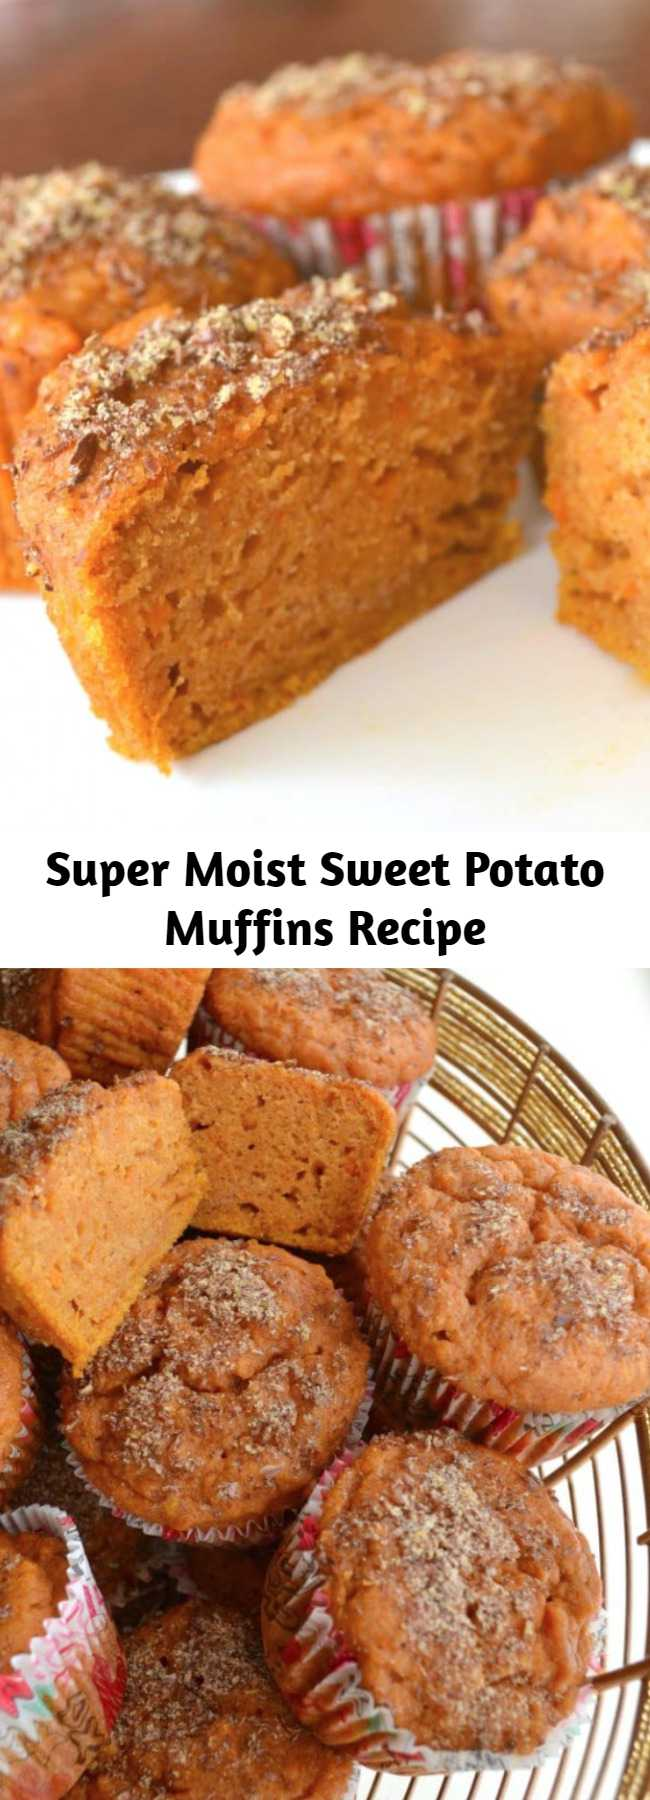 Super Moist Sweet Potato Muffins Recipe - These sweet potato muffins are extremely moist, packed with nutrients, and DELICIOUS! You can feel good about feeding them to your family for breakfast or for a snack.